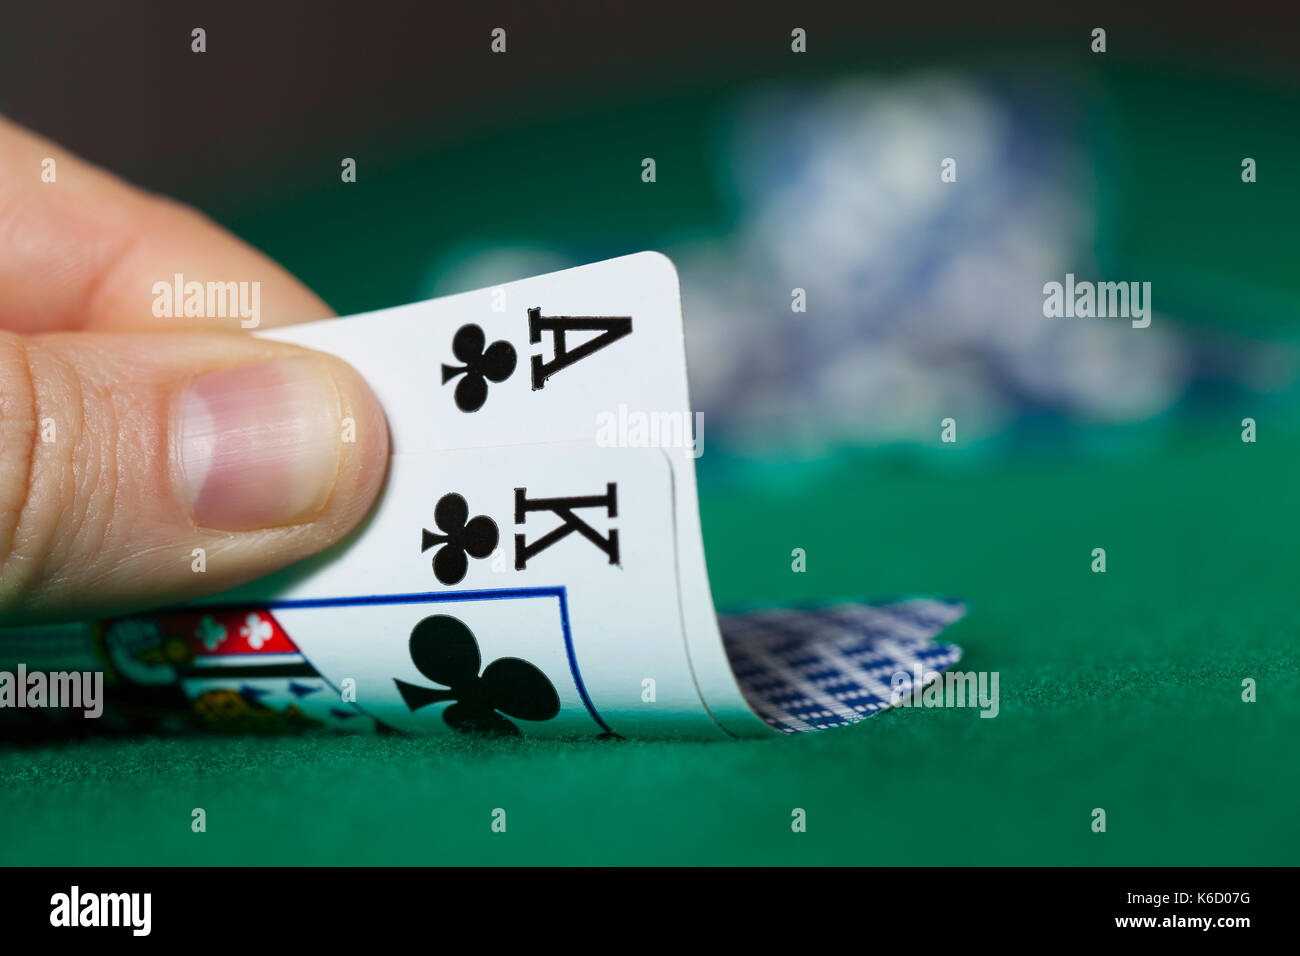 Man Hand Holds Ace with King and Poker Chips - Stock Image